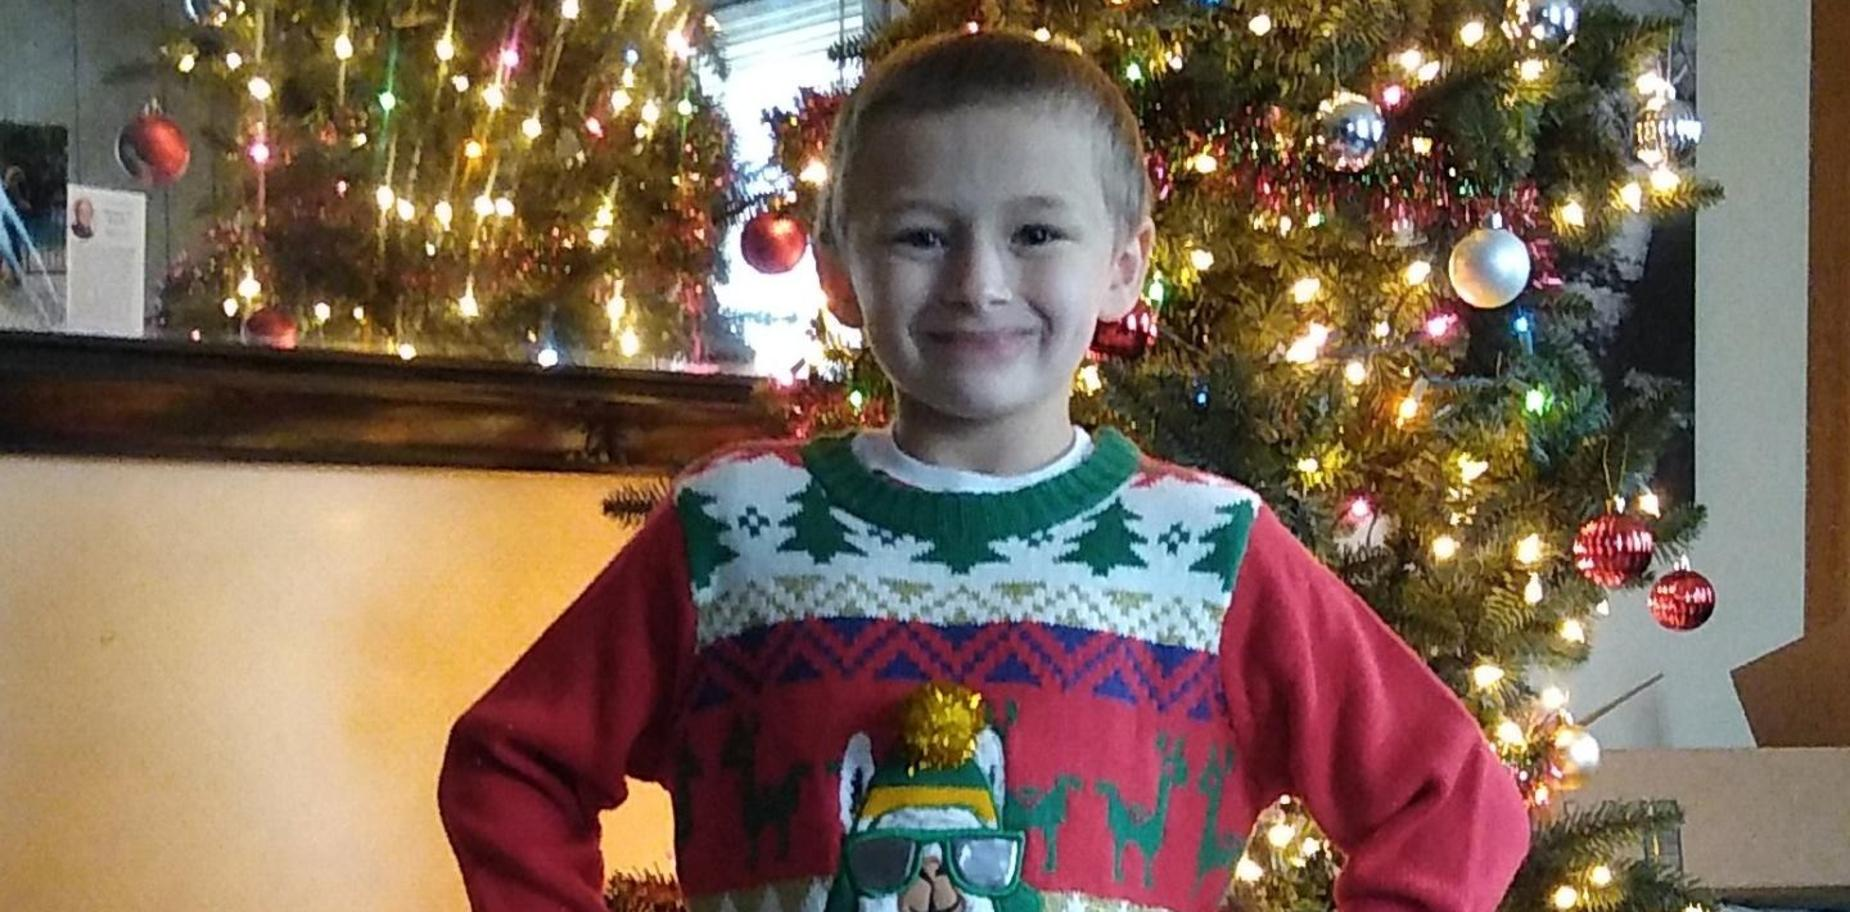 Picture of child in holiday clothing